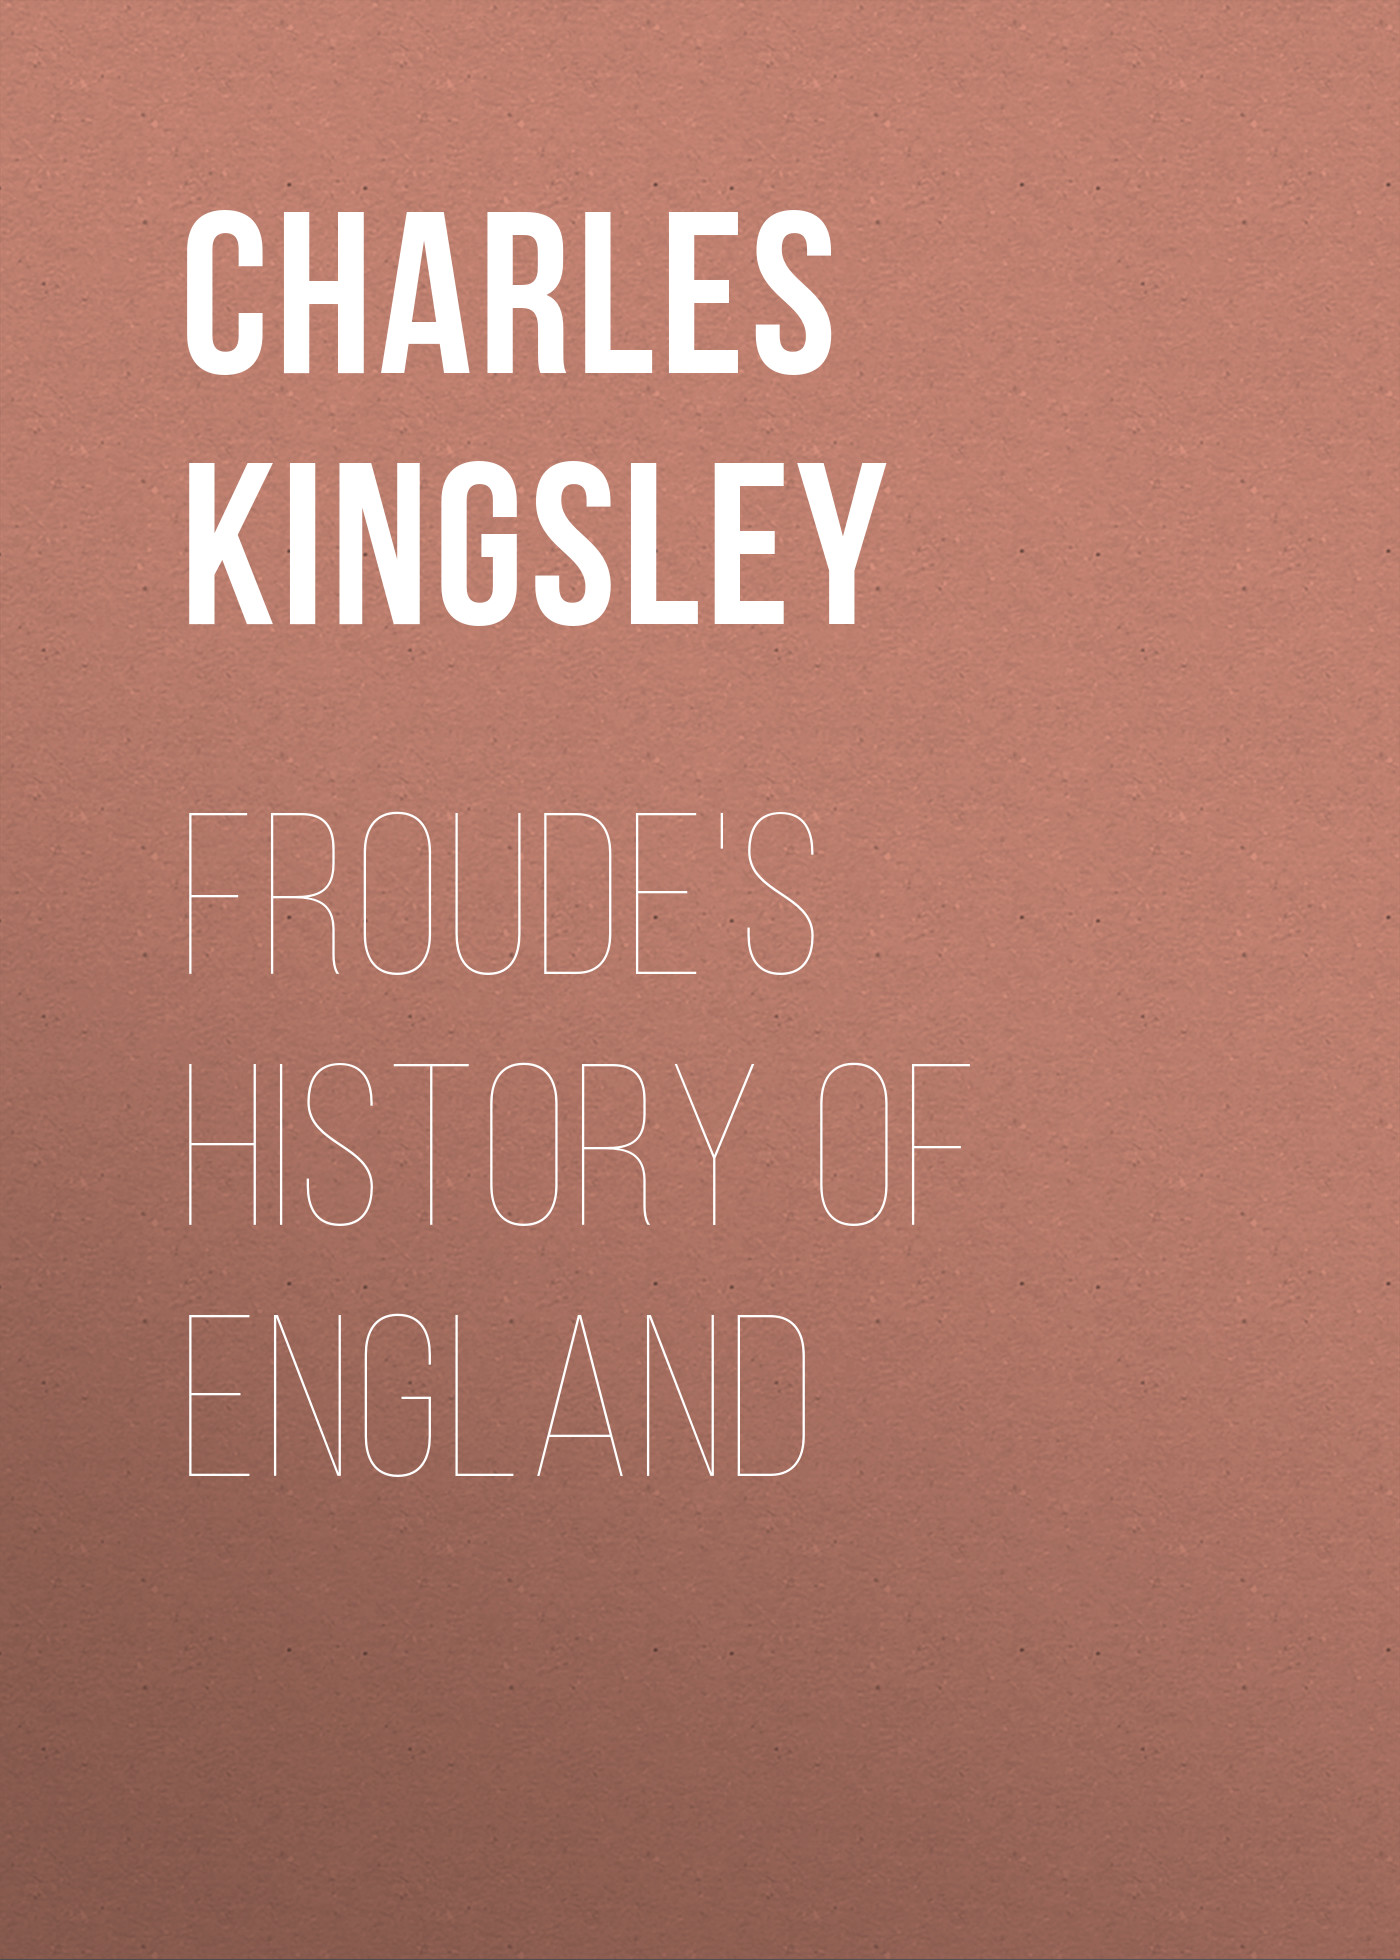 Charles Kingsley Froude's History of England charles warren currier history of religious orders